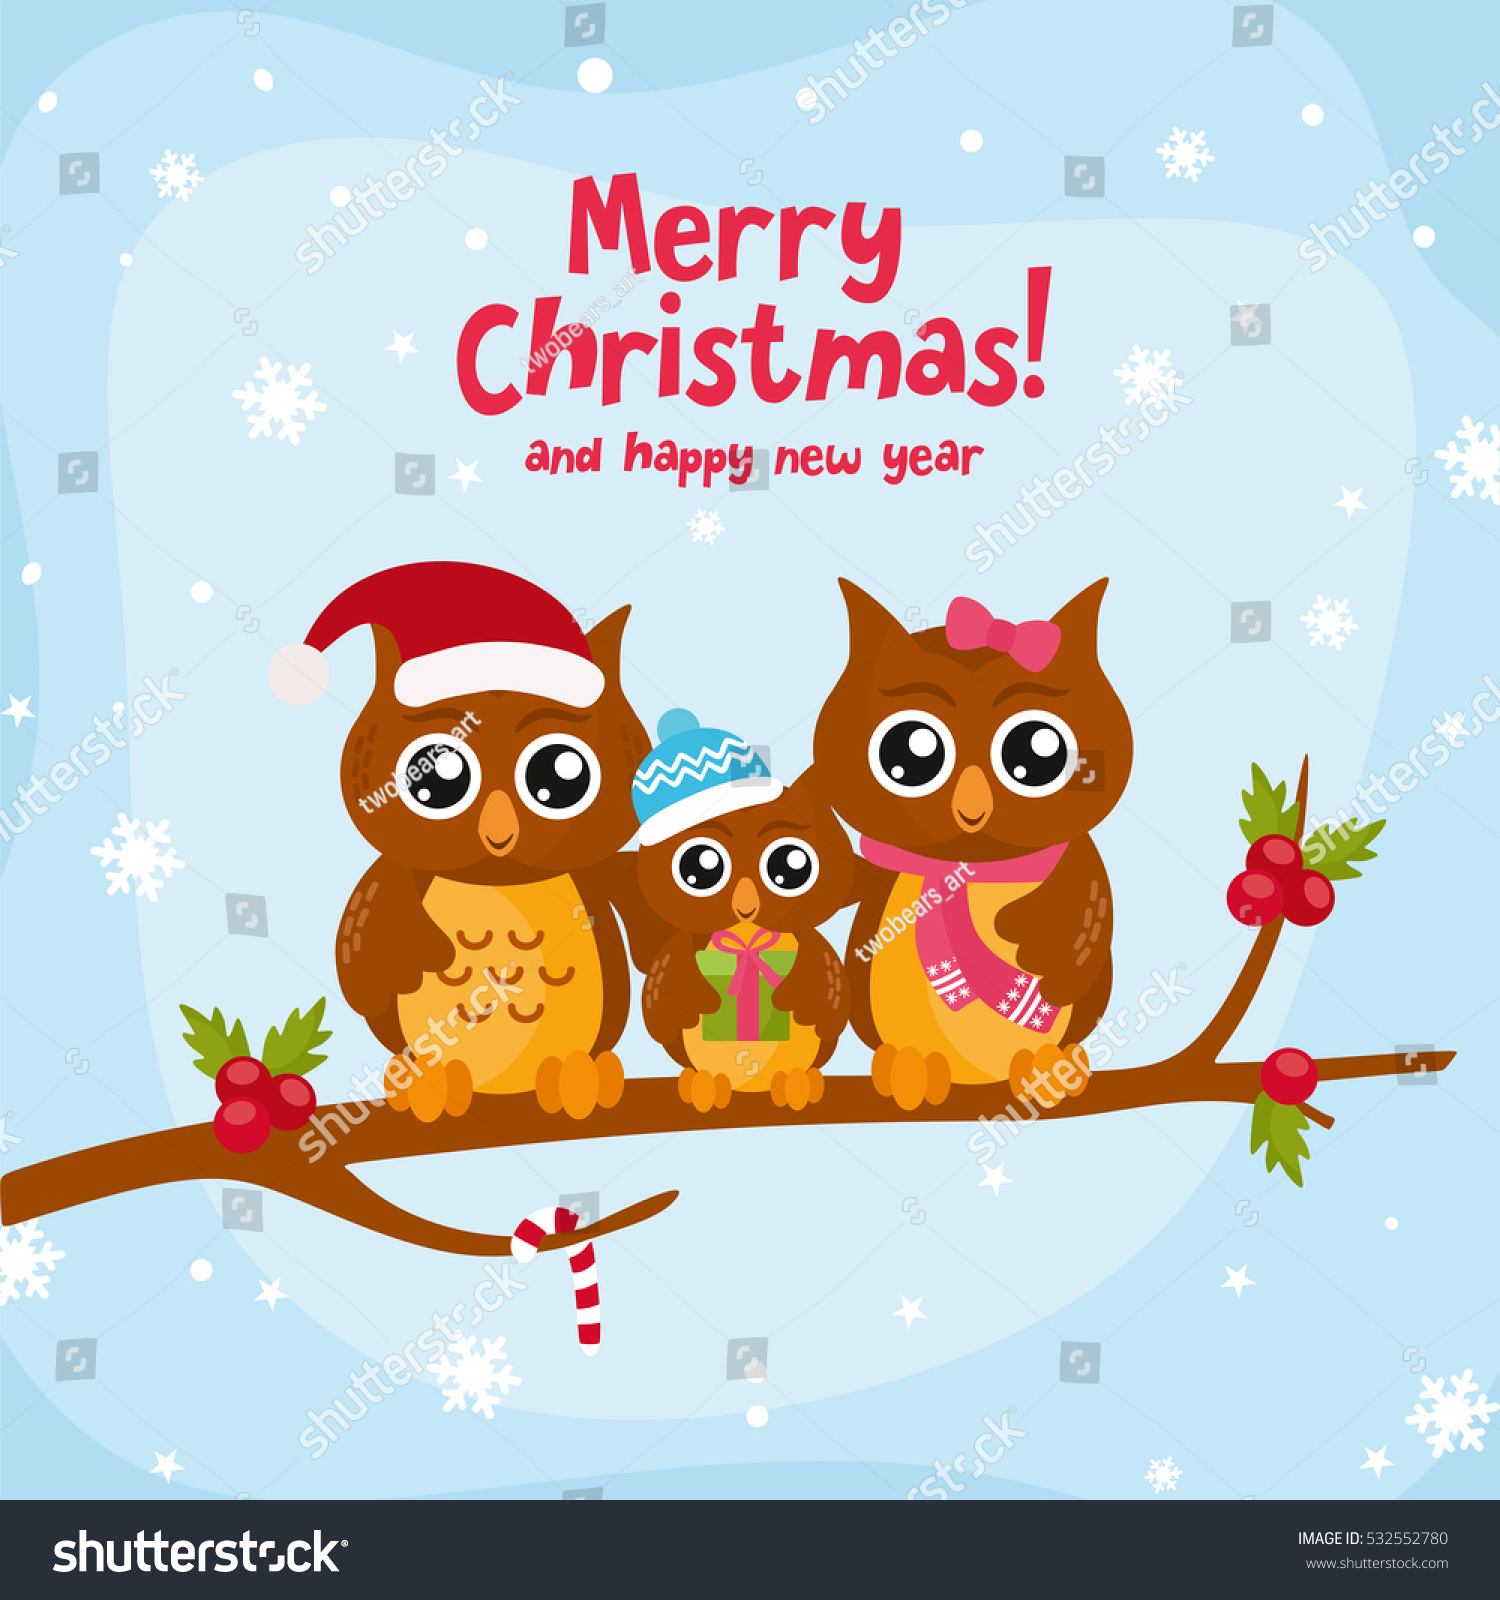 Merry Christmas Wishes Funny.Funny Owl Family Merry Christmas Greeting Stock Vector